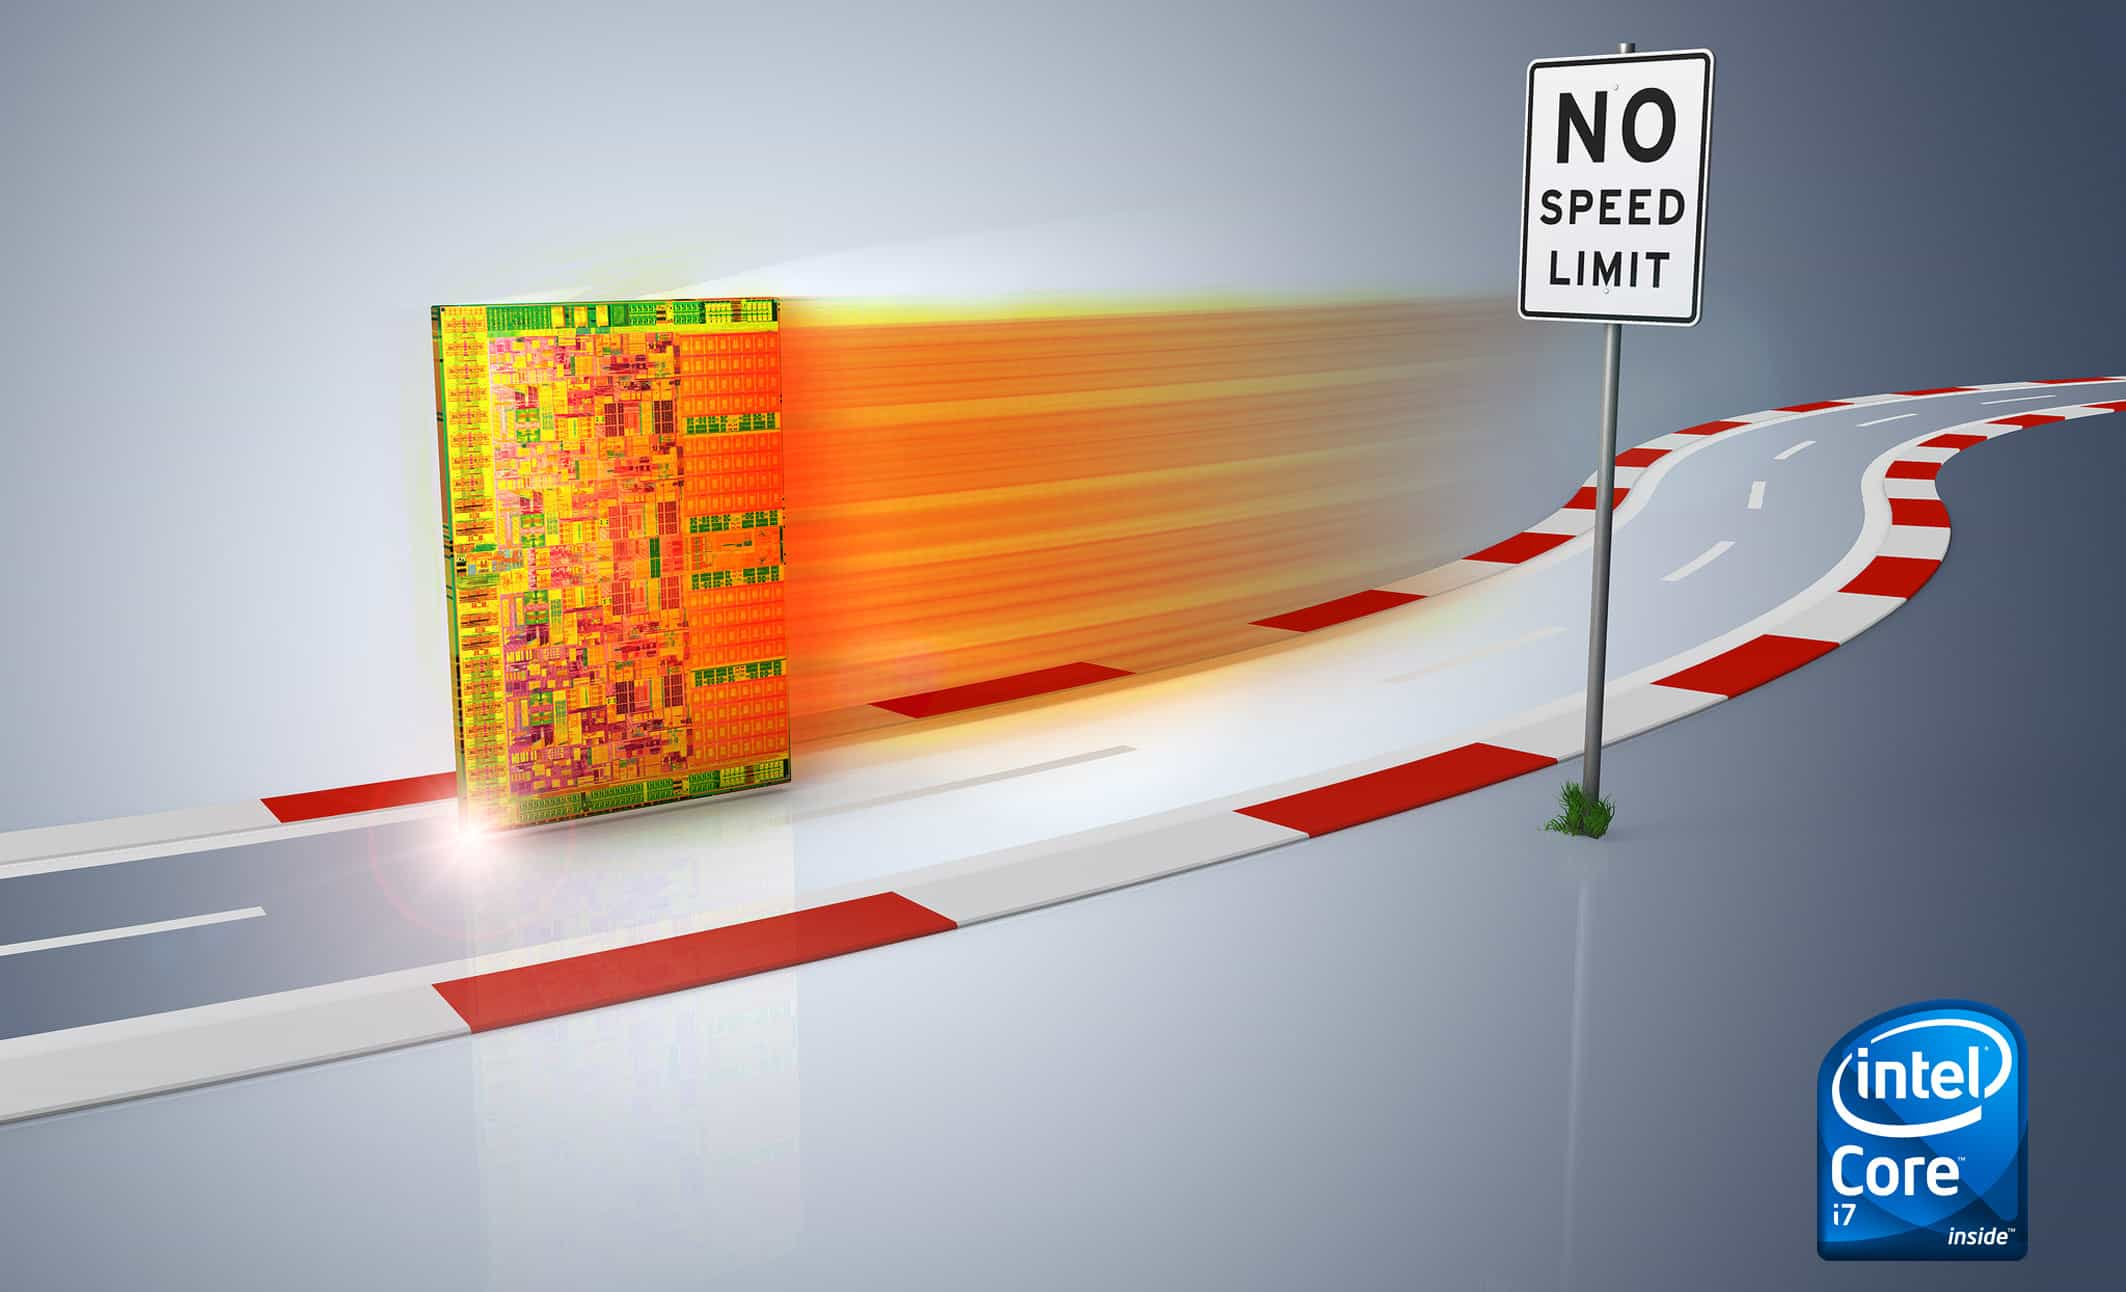 Intel Core i7 No Speed Limit